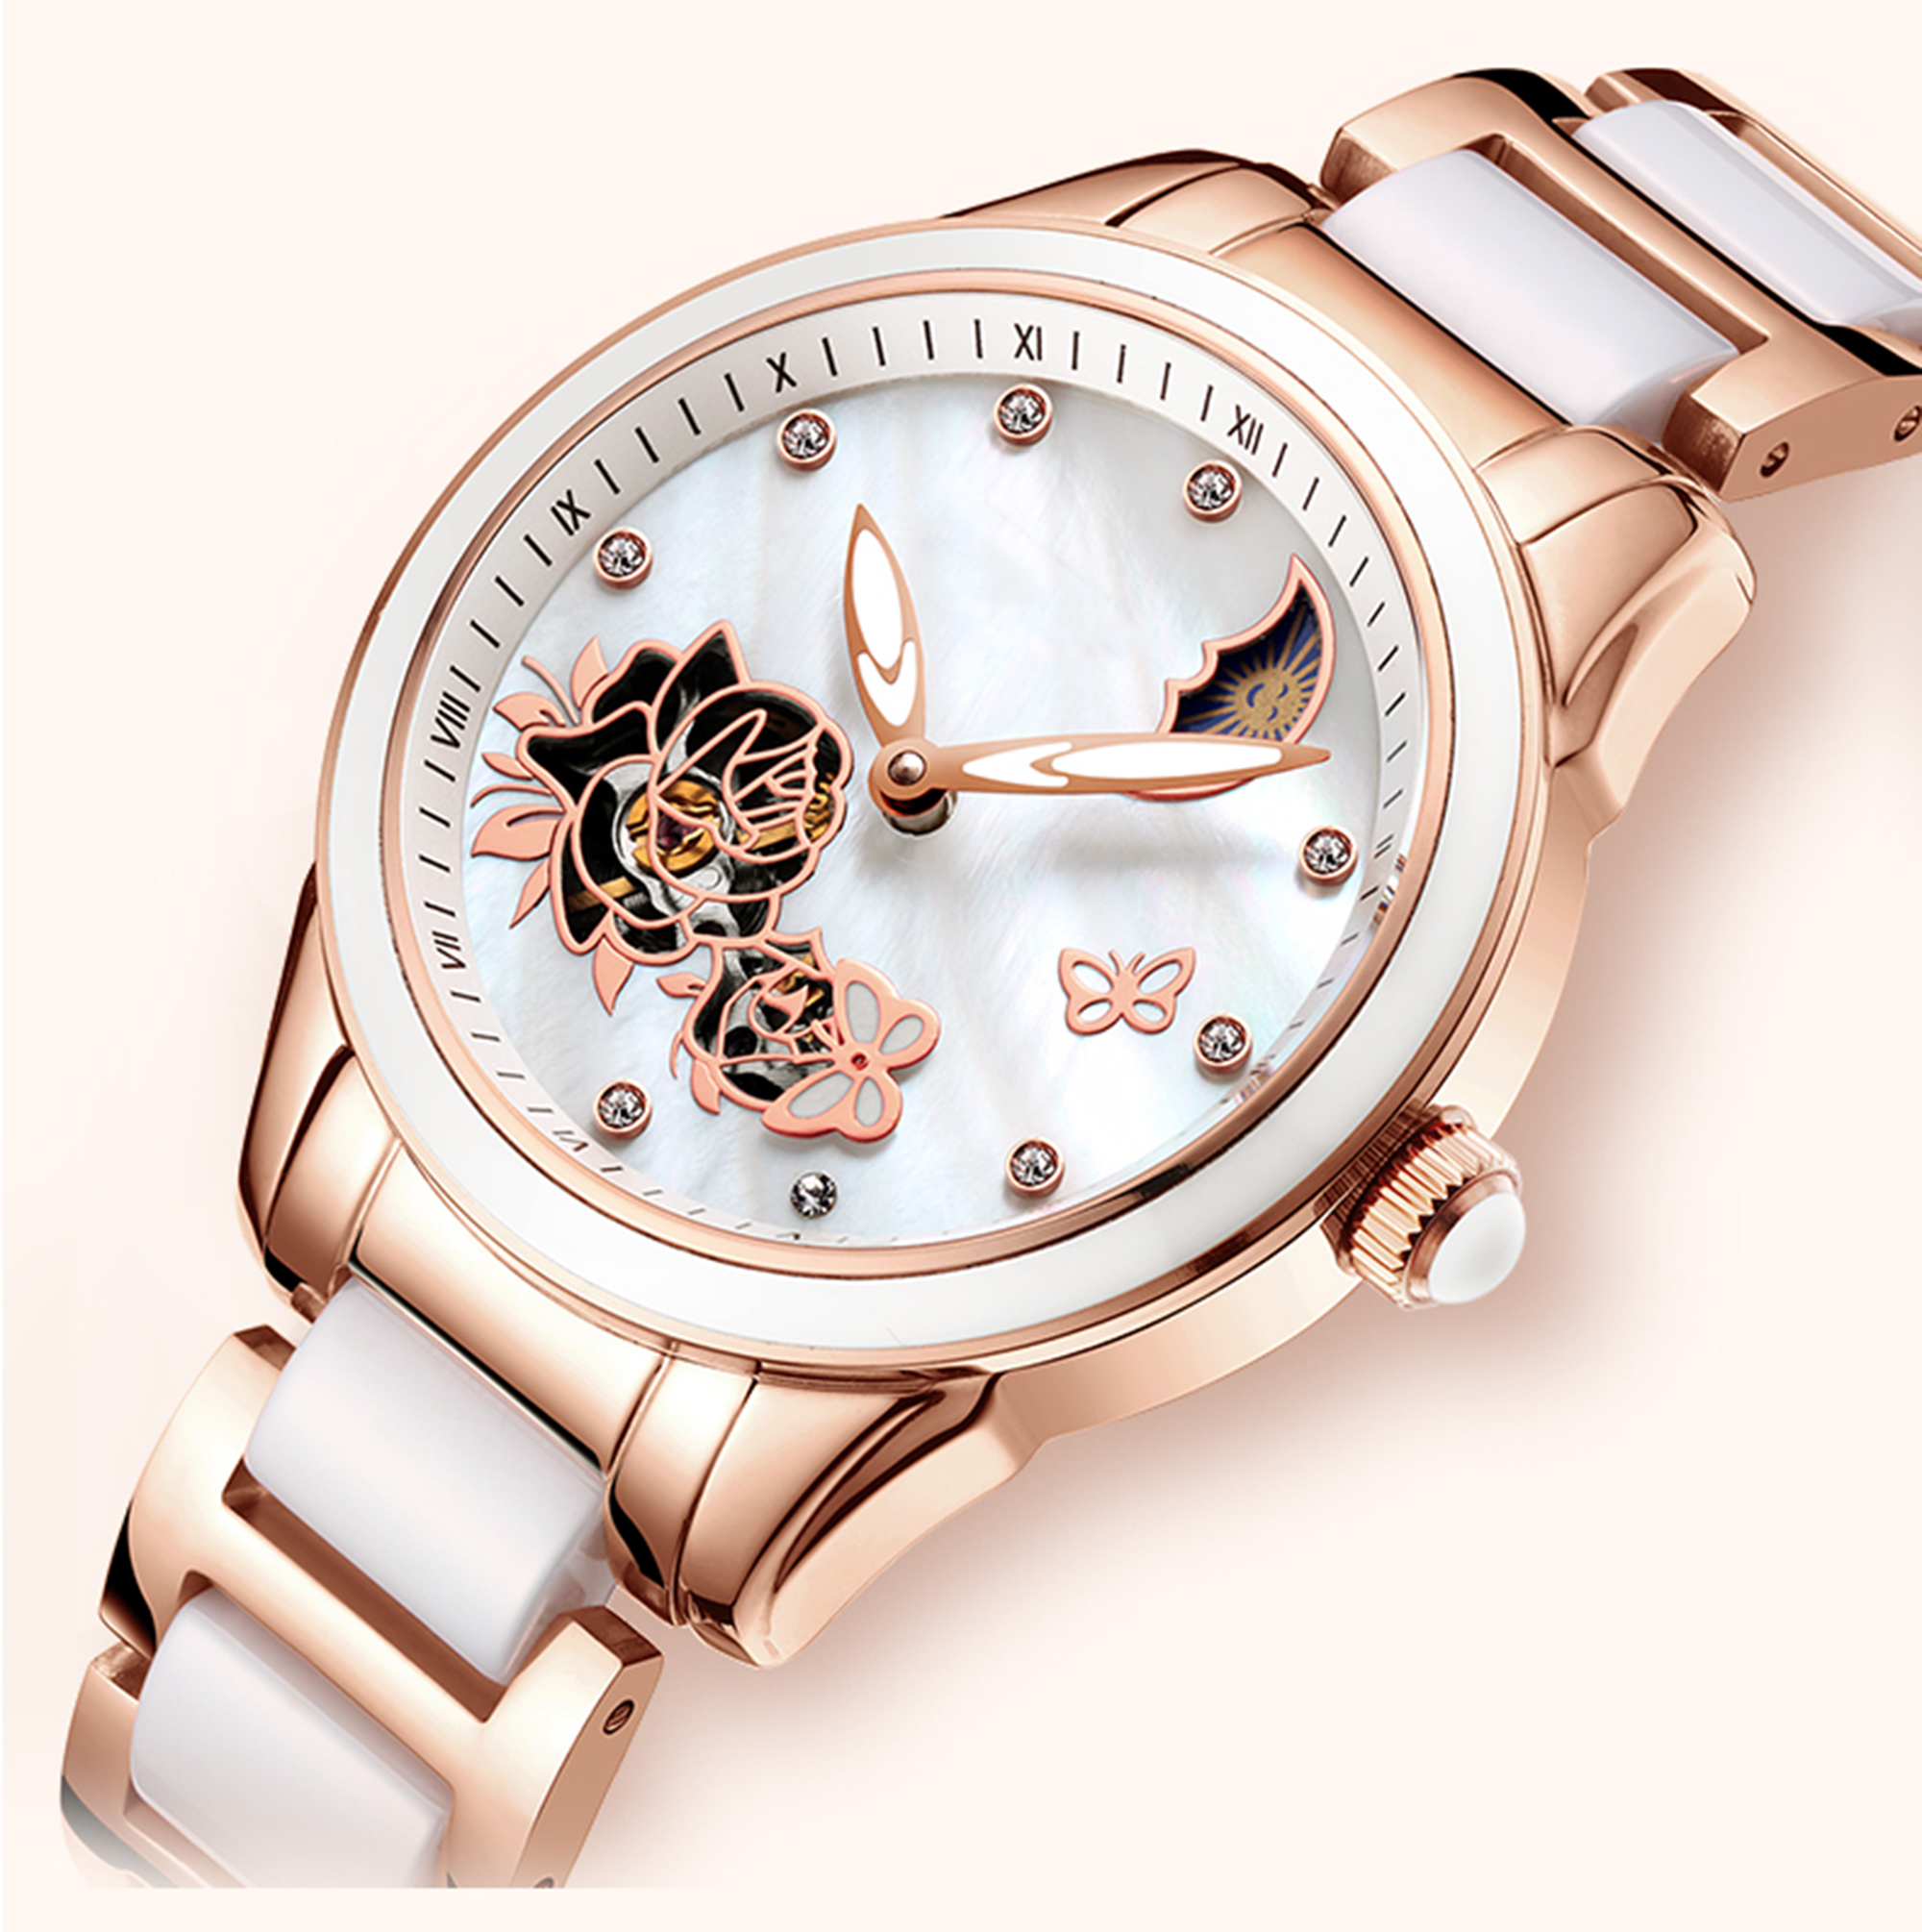 Luxury Lady's Stainless Steel <strong>Ceramic</strong> Strap Luminous Mechanical Automatic Wristwatch